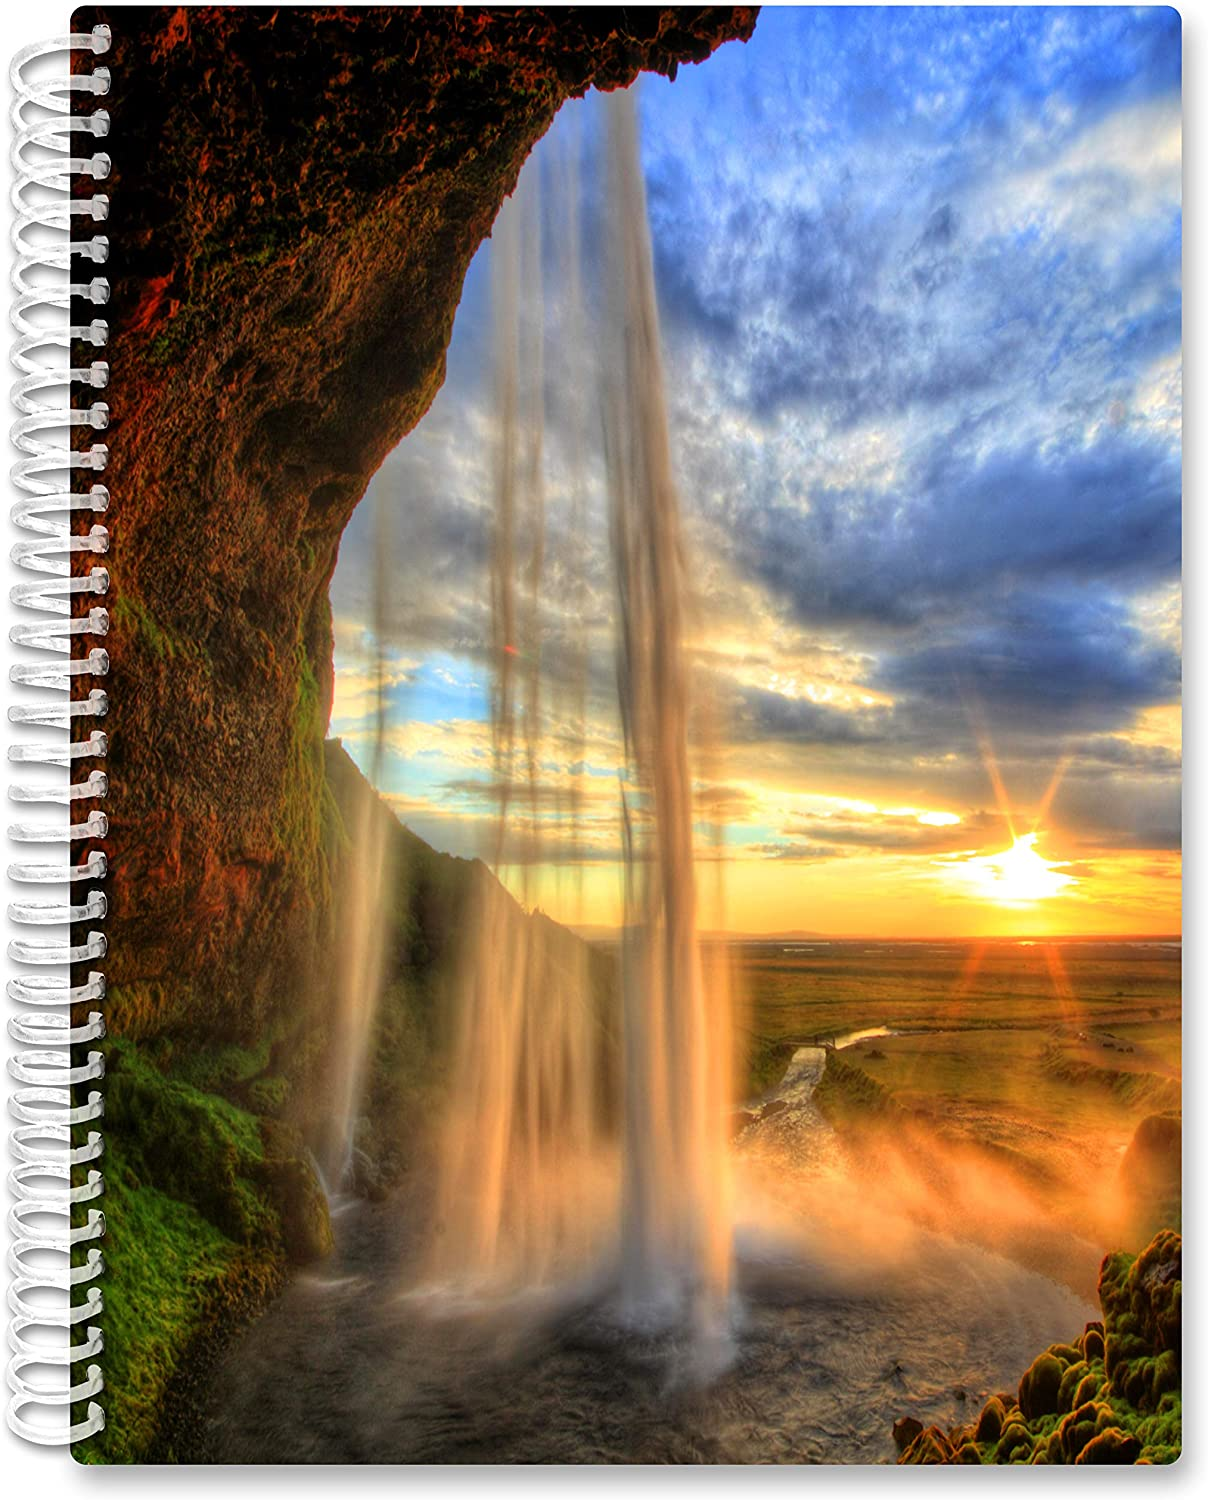 2021 Calendar Year Softcover Planner - 8.5 x 11 - Sunset Waterfall